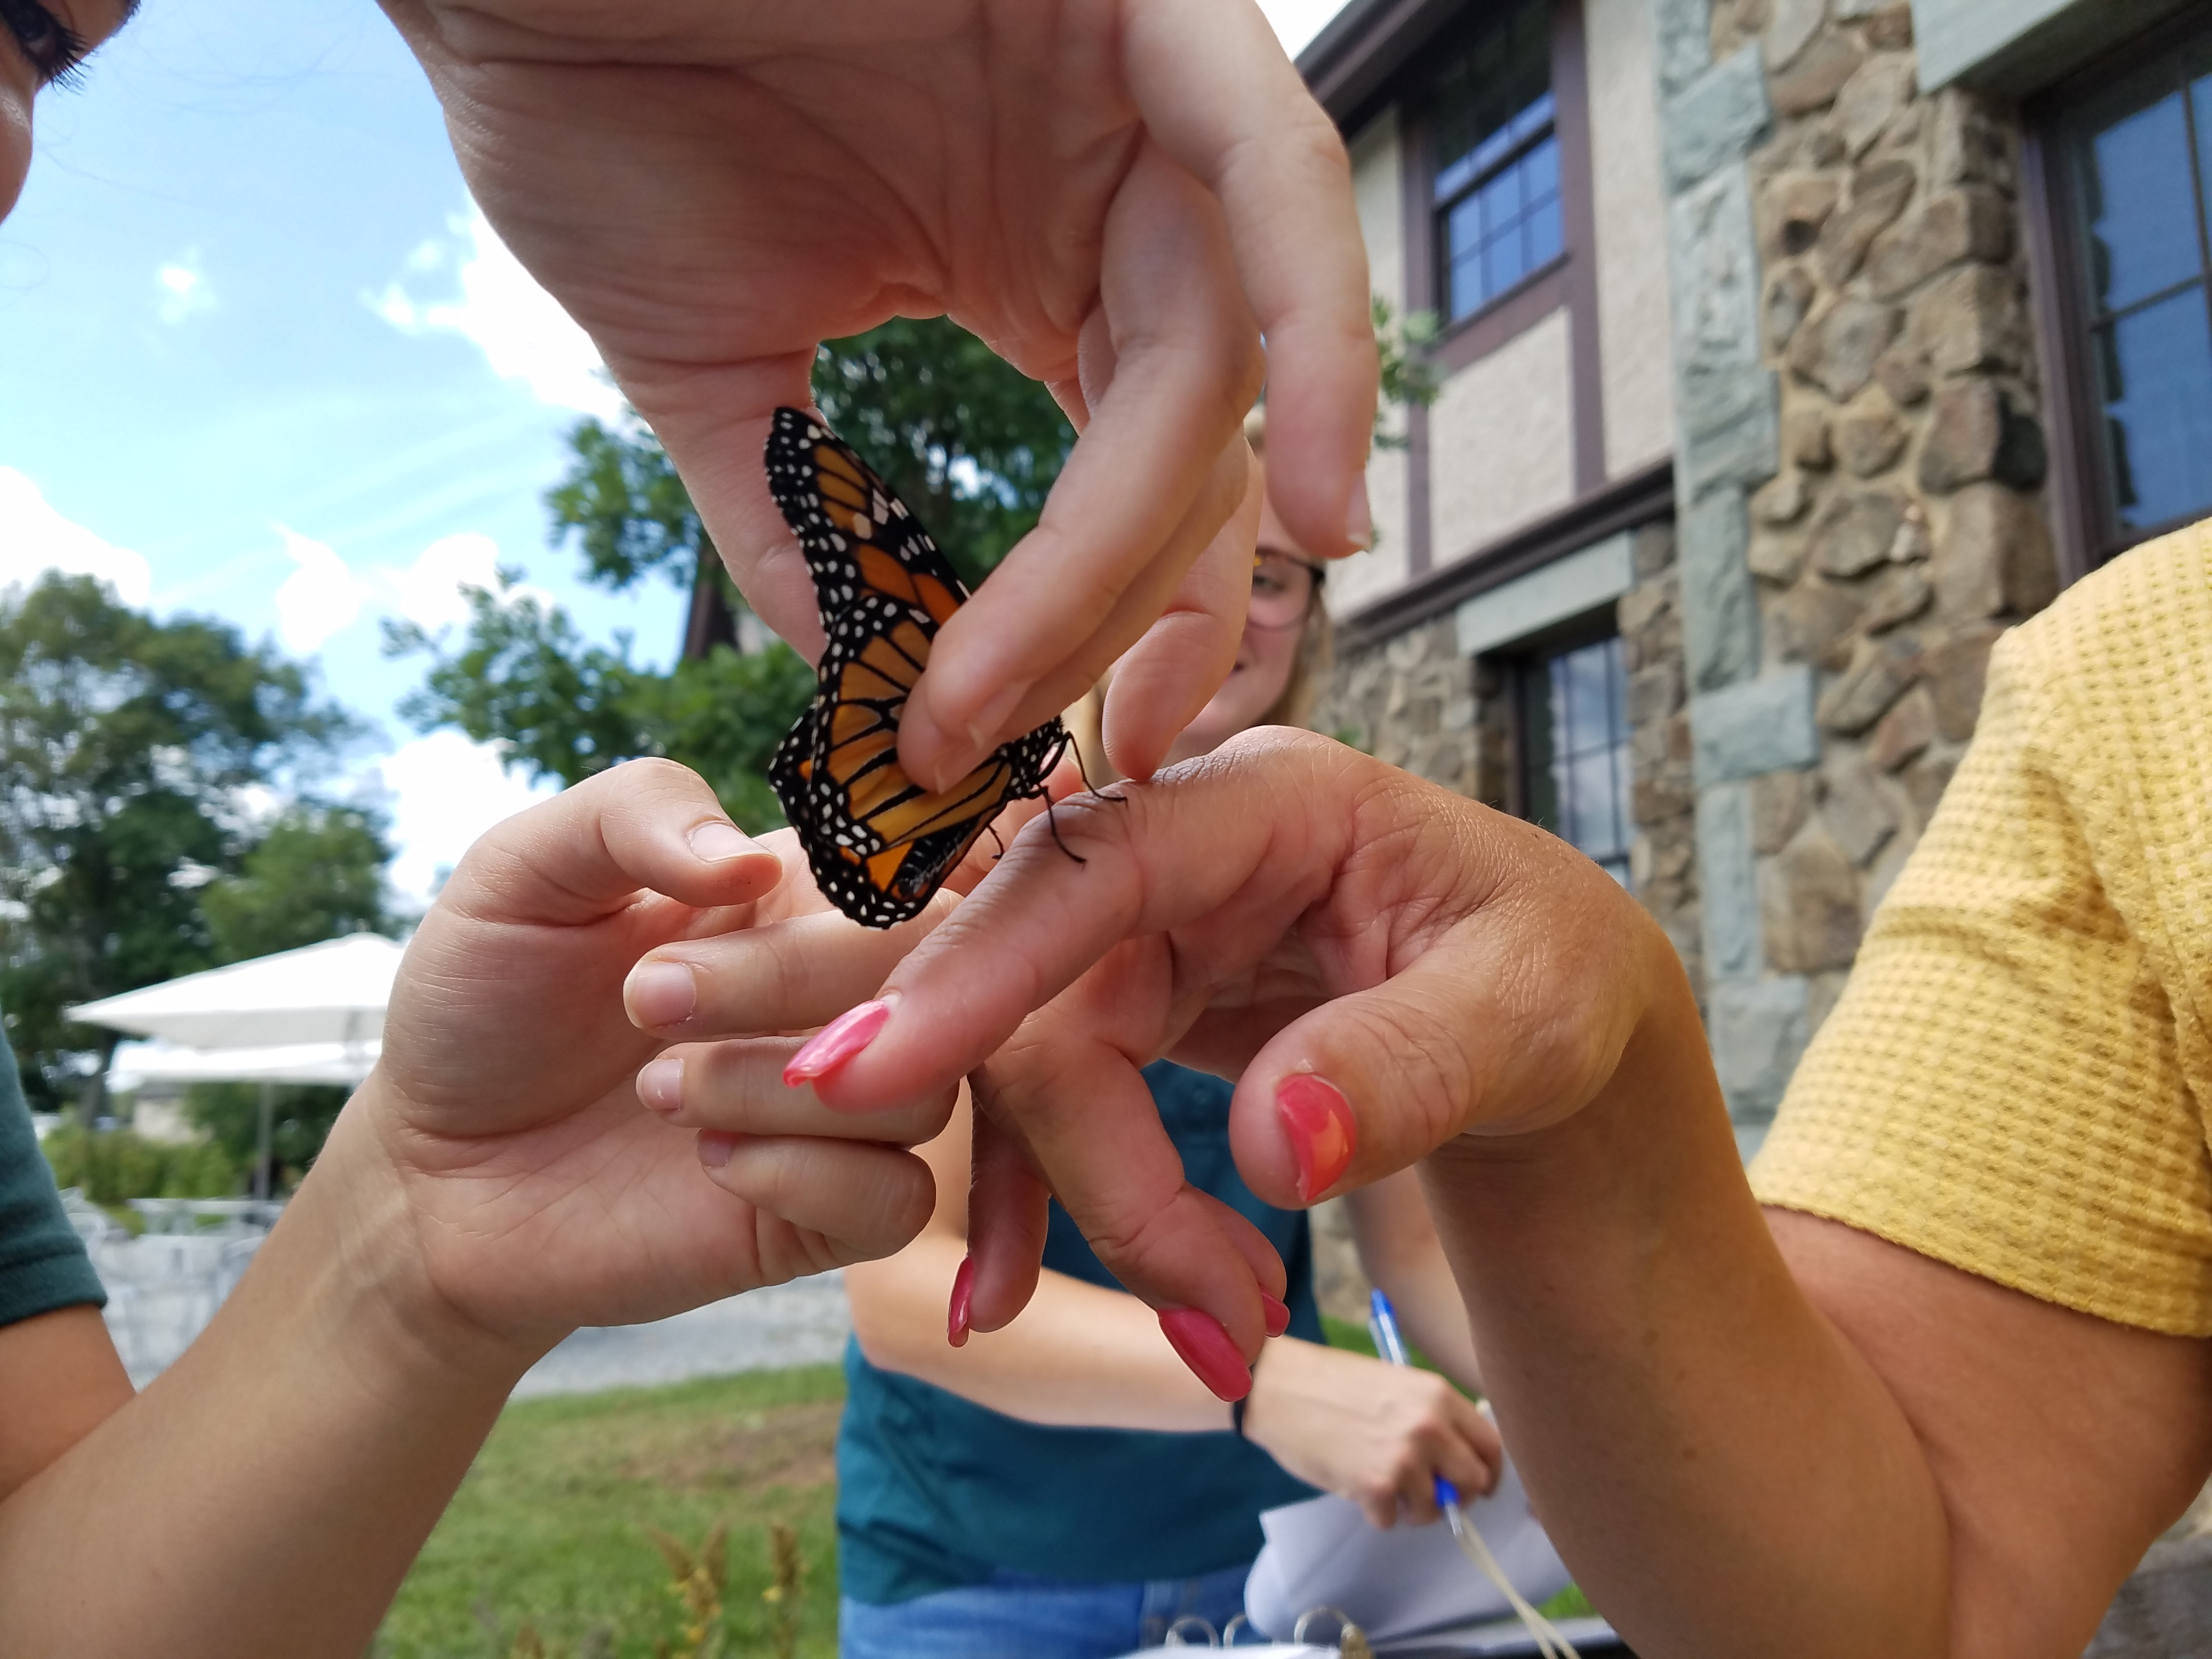 Kathleen's vibrant manicure rivals the gorgeous colors on a resident monarch